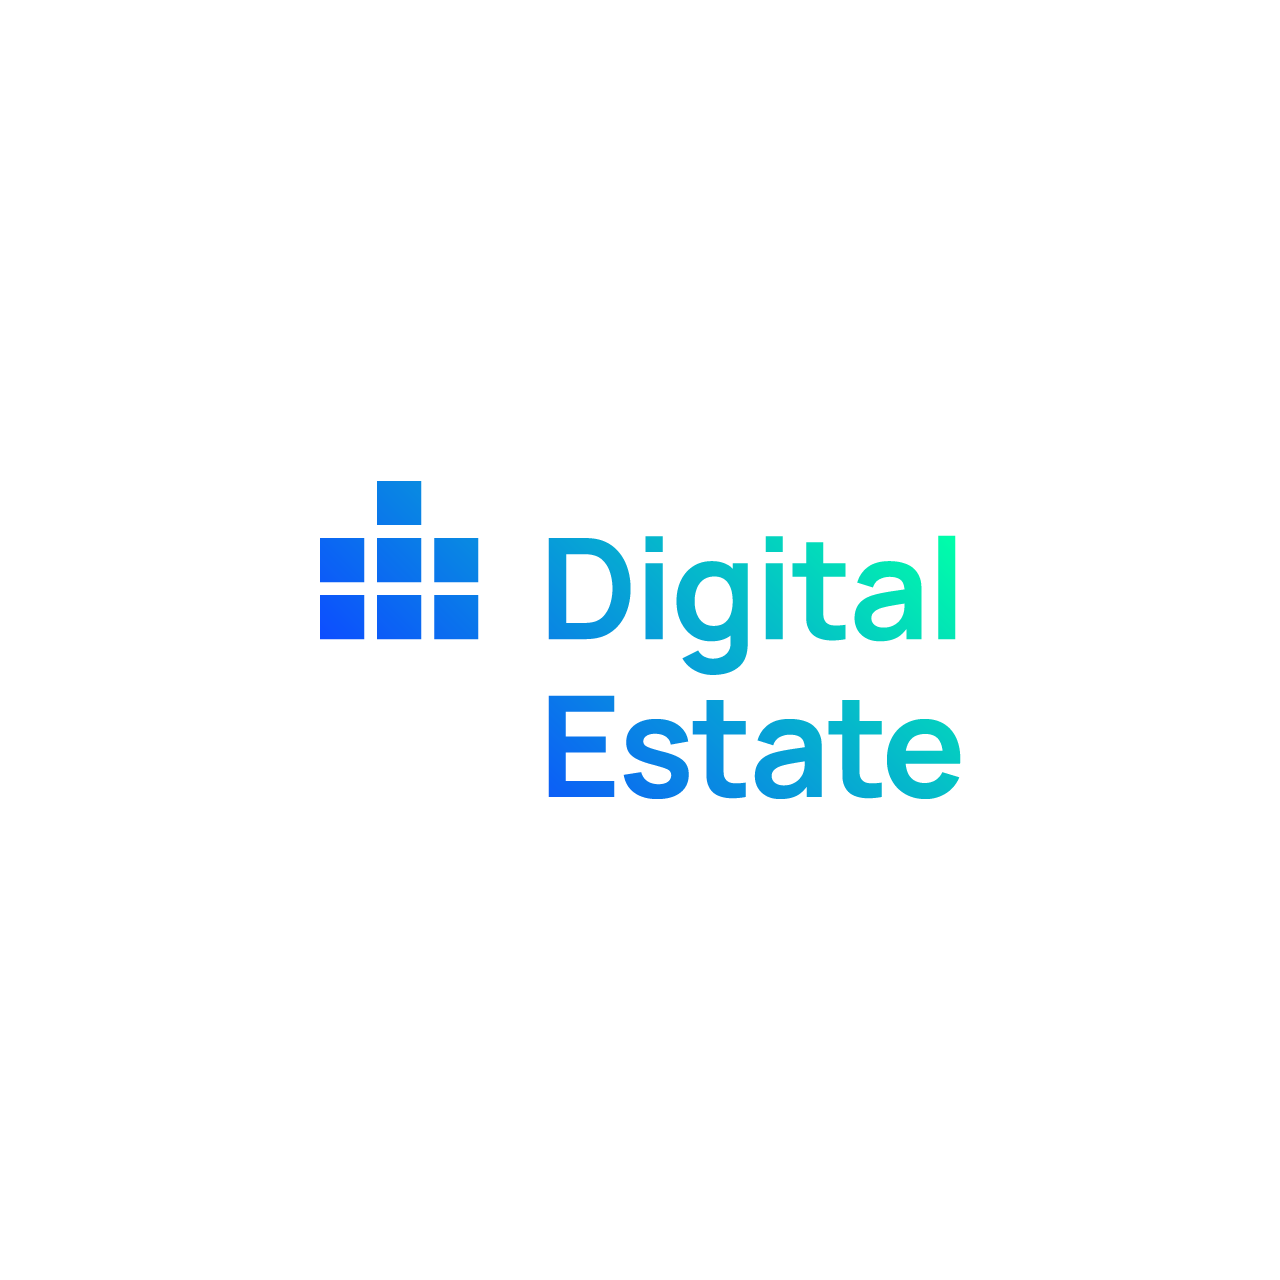 Digital Estate Blue/Green Logotype with white background - squared banner